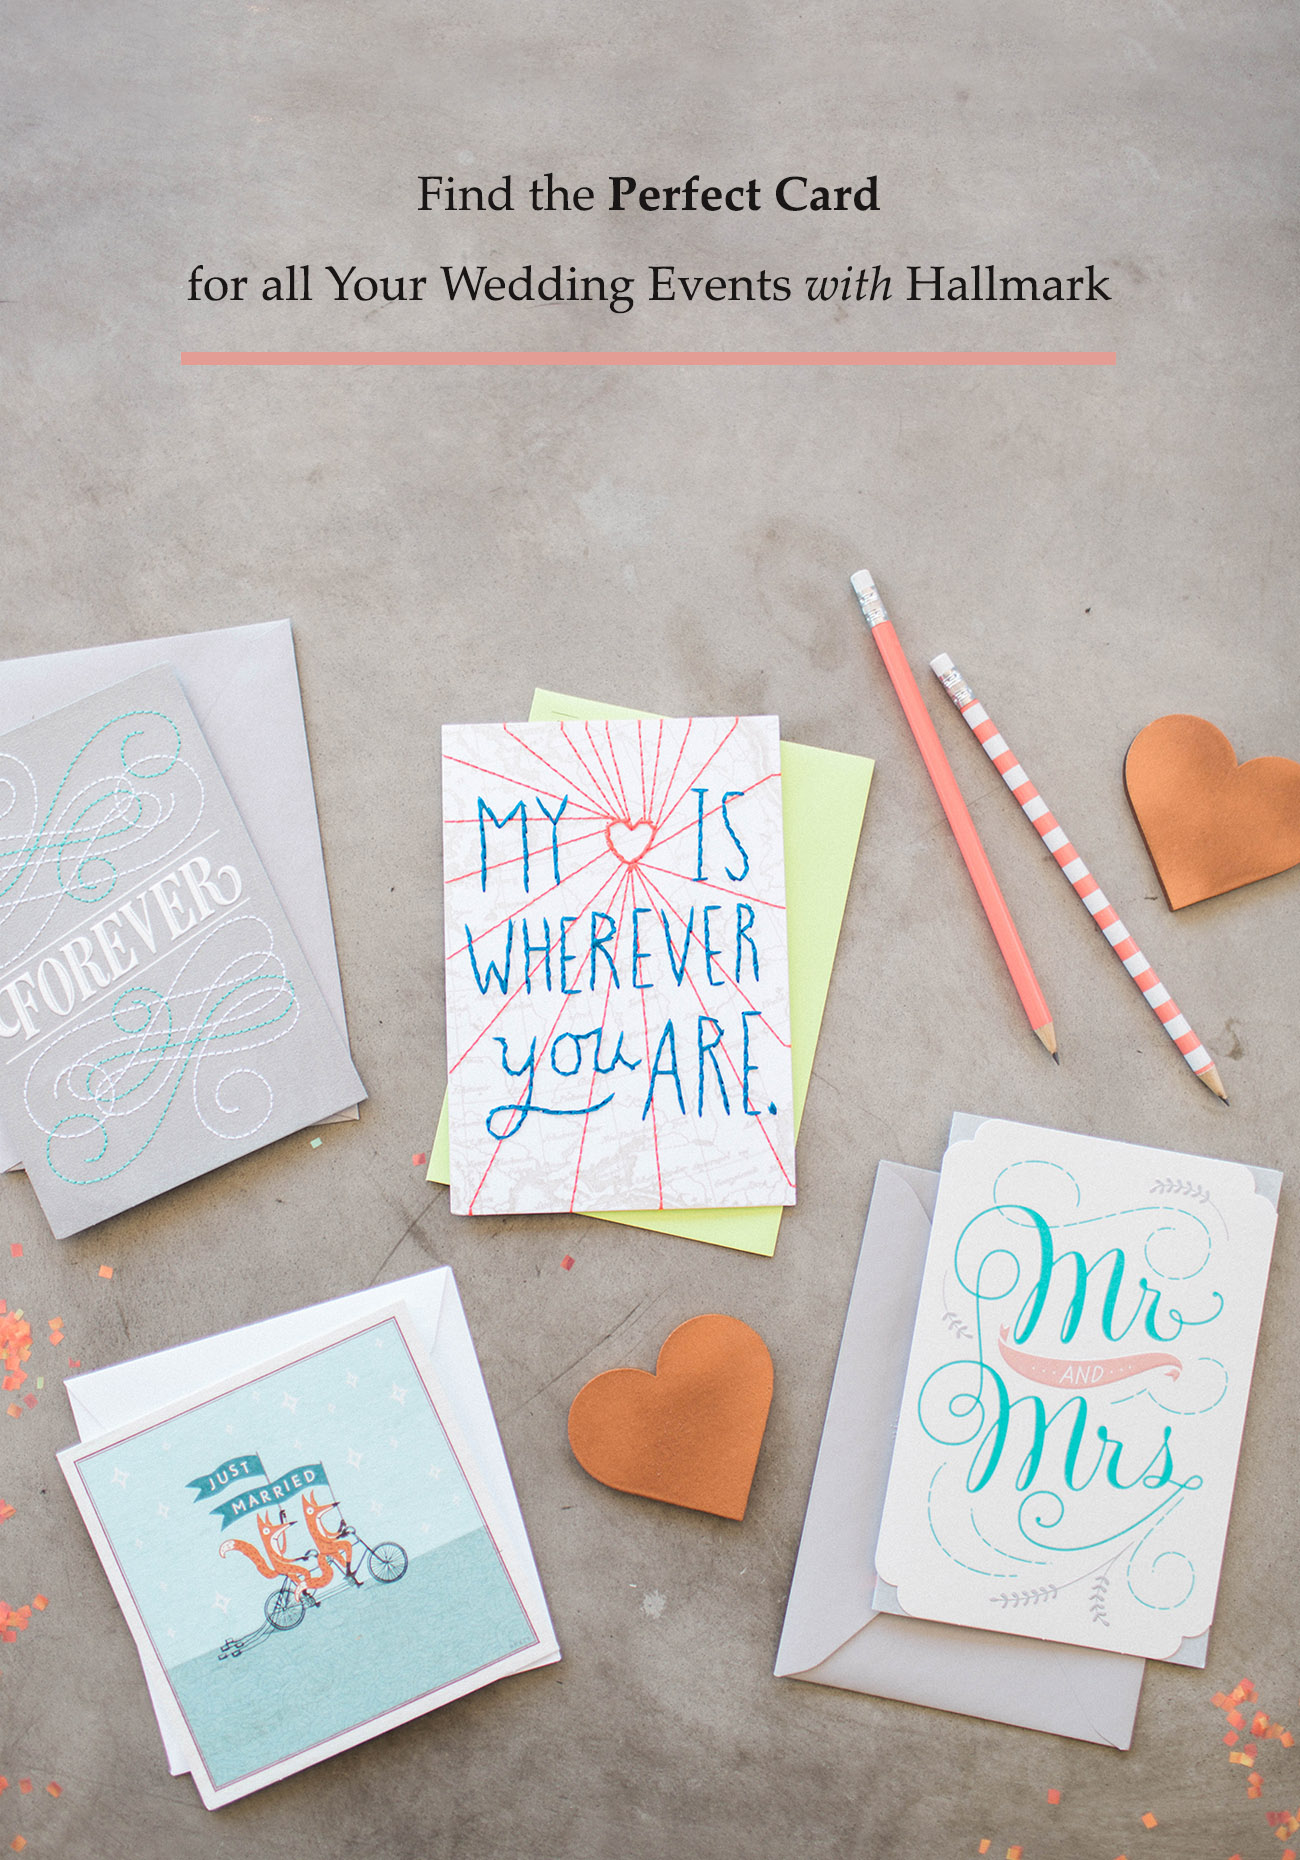 Find the perfect wedding cards with hallmark at walgreens green find the perfect wedding cards with hallmark at walgreens kristyandbryce Images